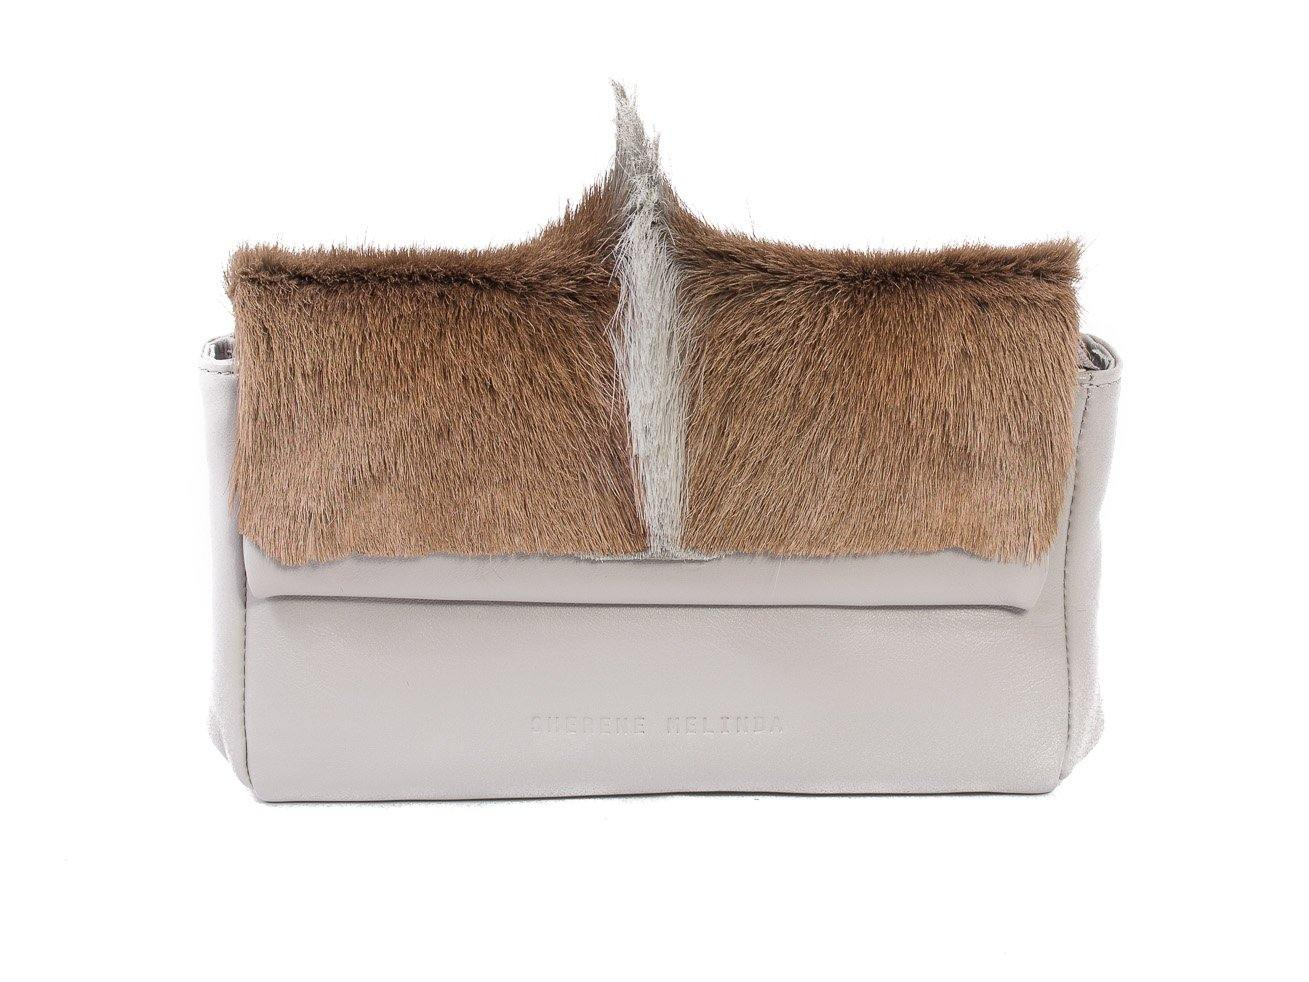 sherene melinda springbok hair-on-hide earth leather Sophy SS18 Clutch Bag fan front strap